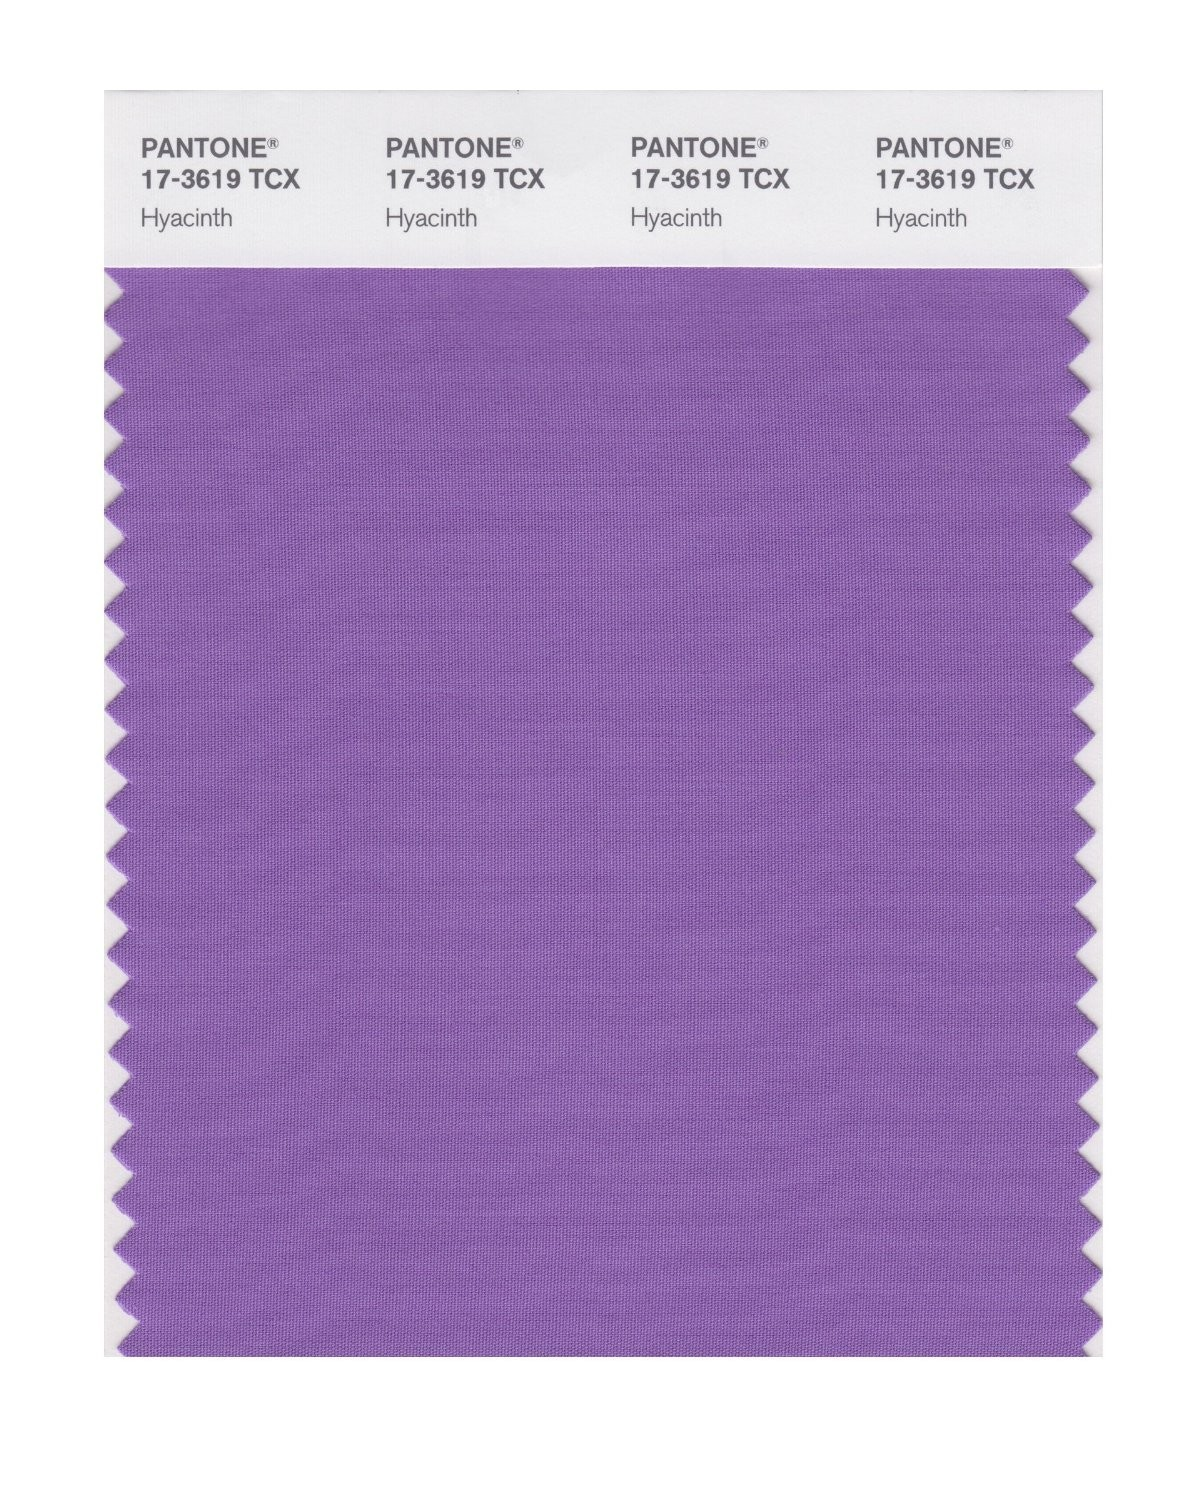 Pantone 17-3619 TCX Swatch Card Hyacinth